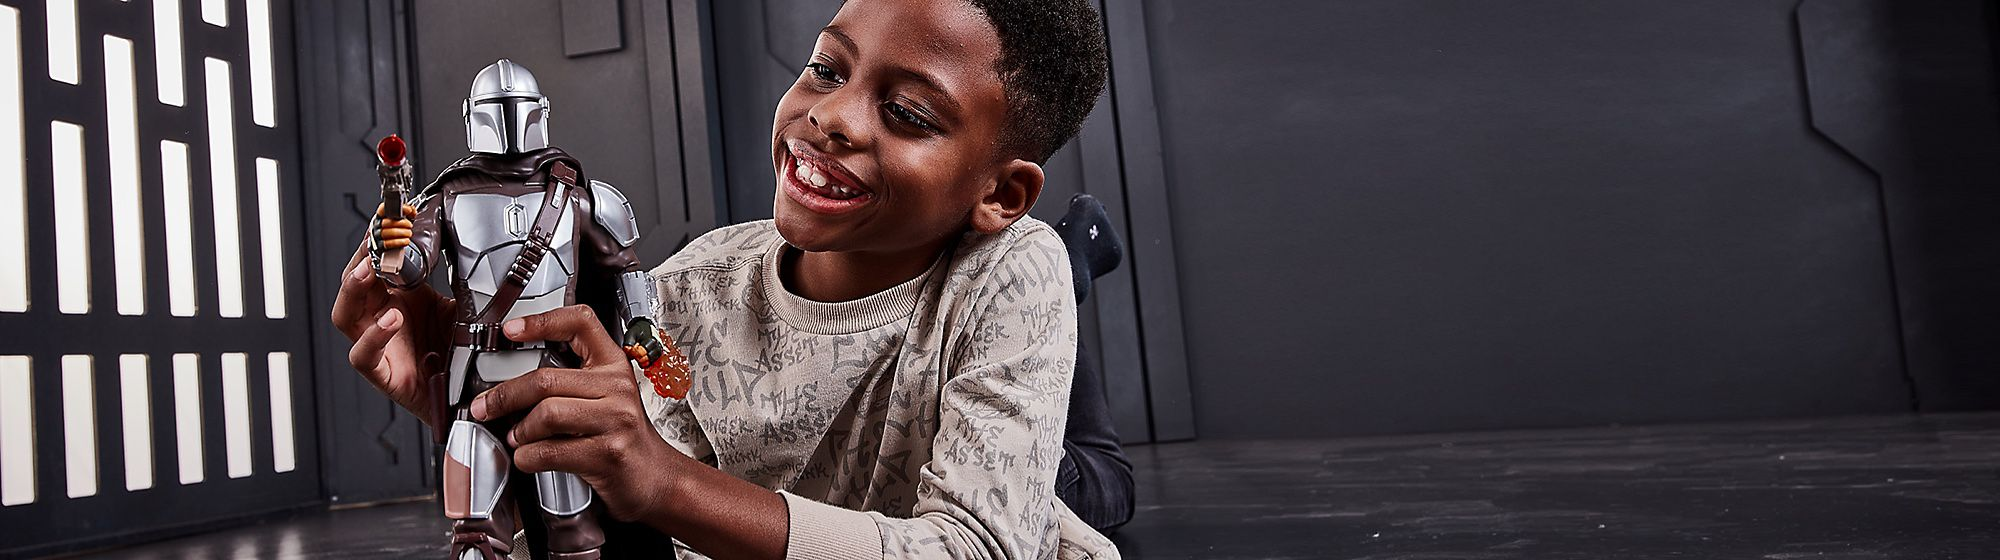 Kids Find the perfect gift for any little Star Wars fan featuring toys, playsets, costumes and more